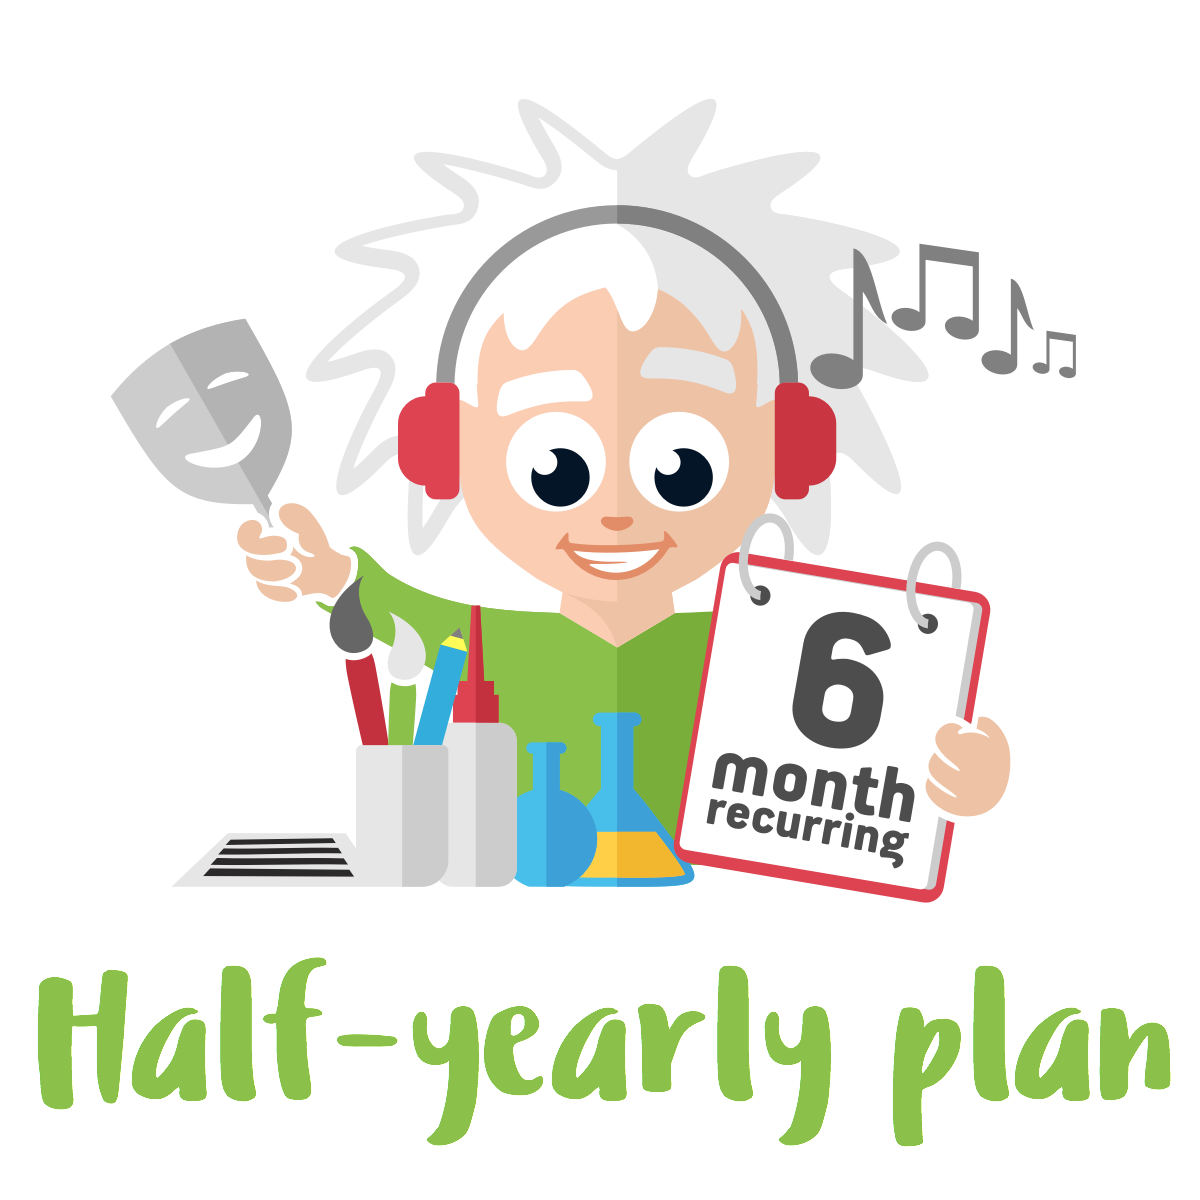 Half-yearly Premium Plan - 4 Premium Activities on a 6 month Plan